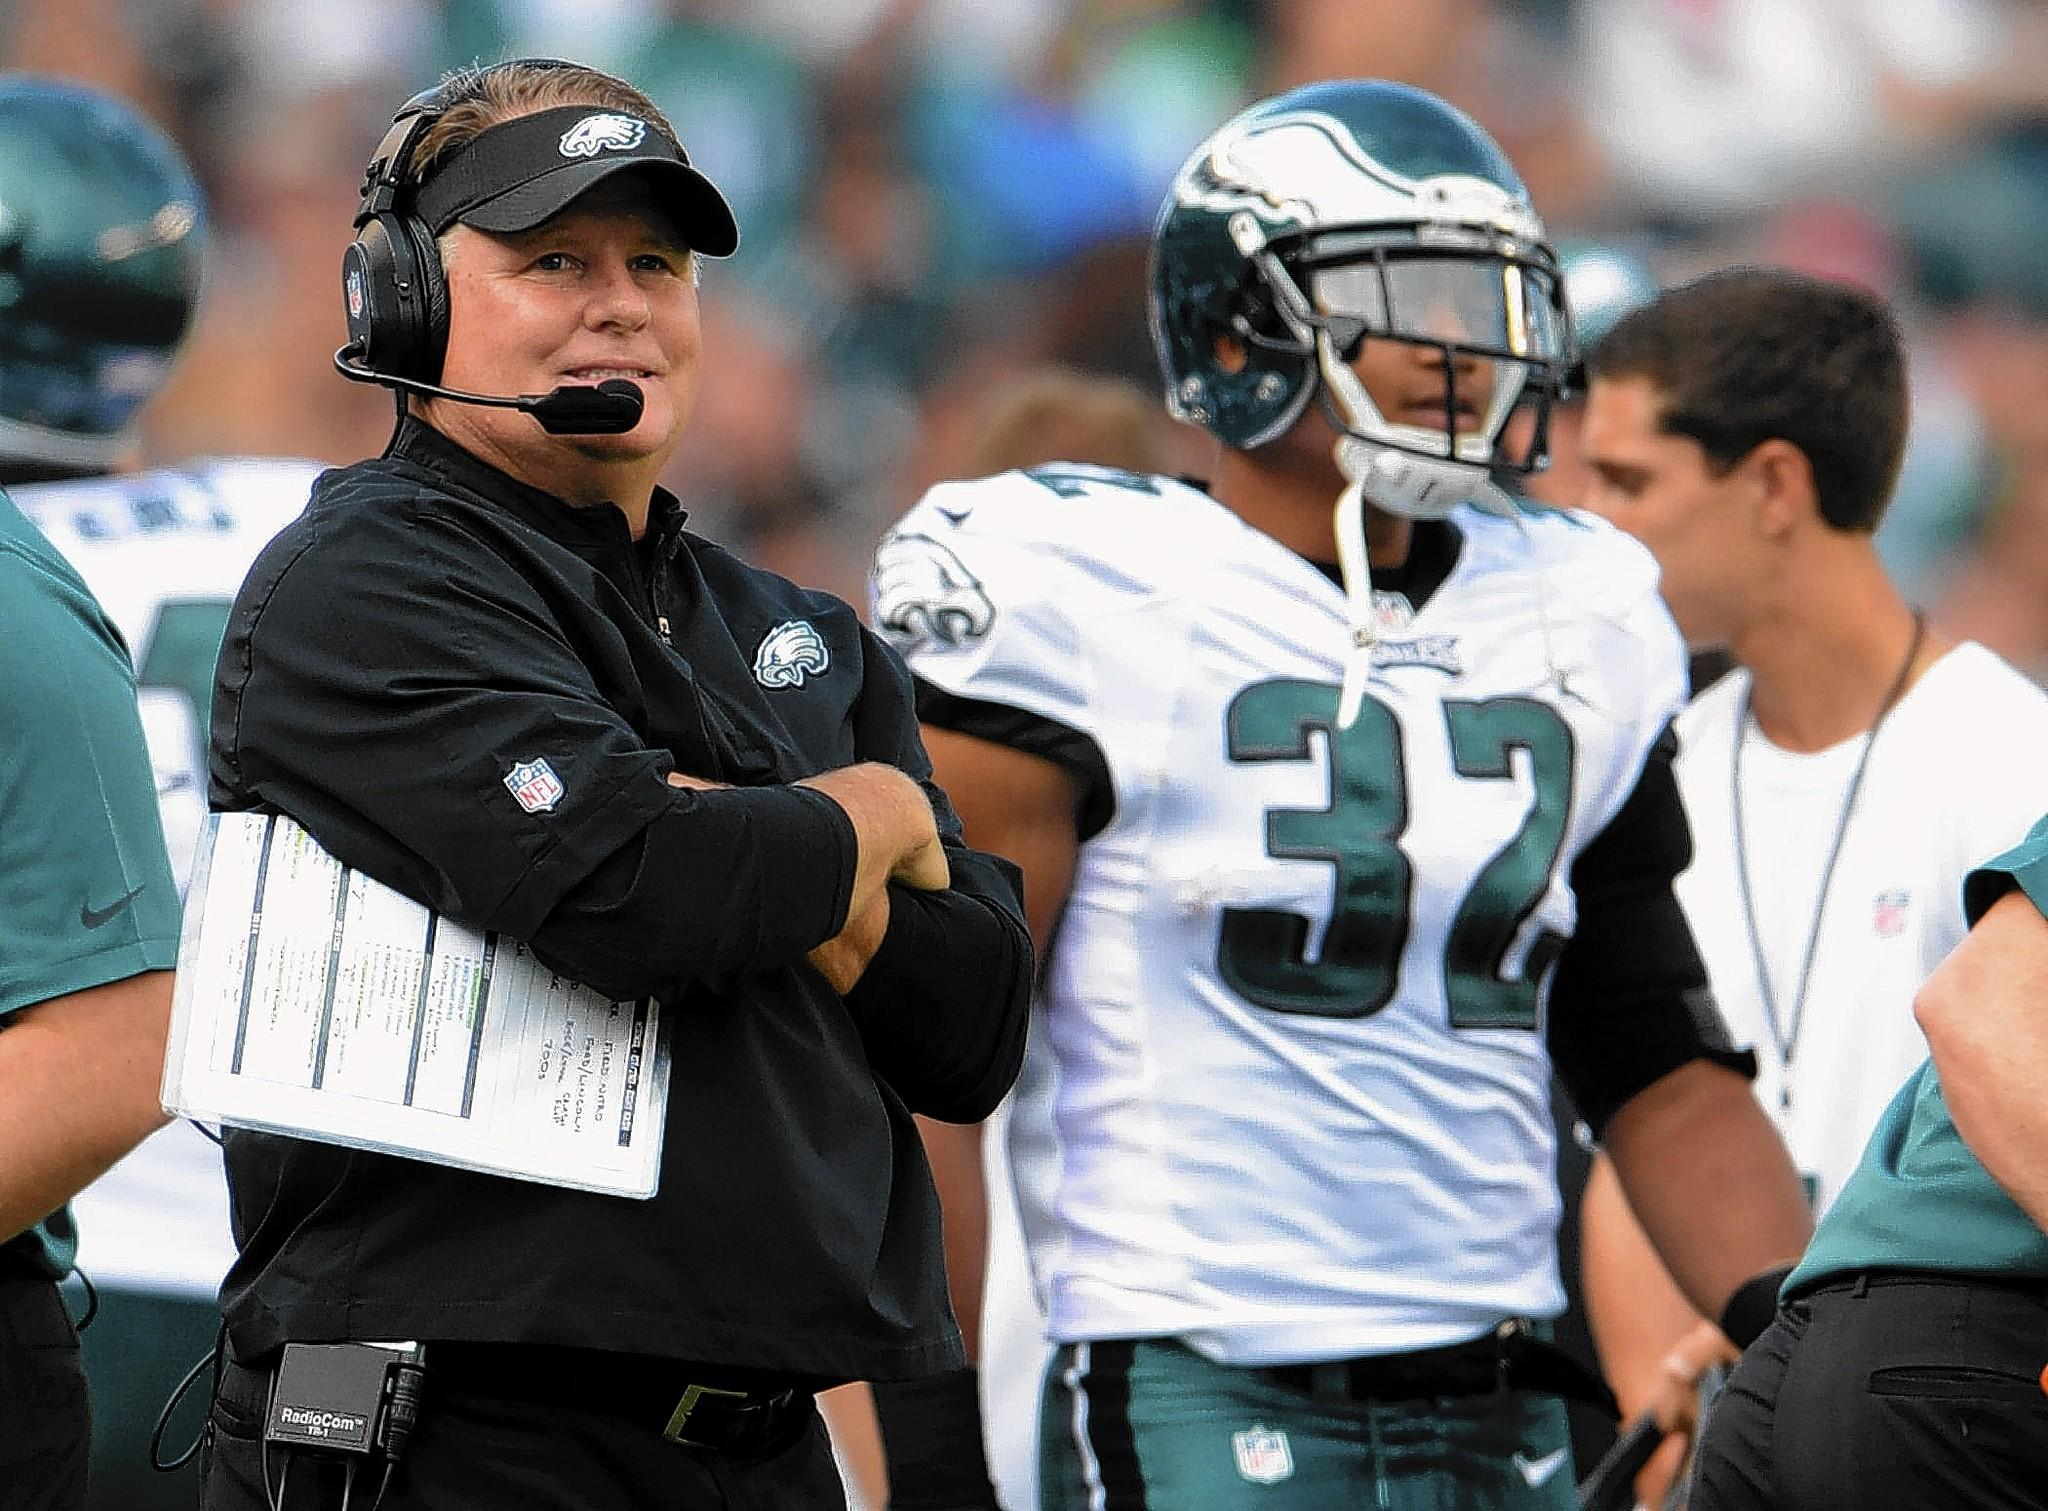 Eagles head coach Chip Kelly praise the energy his team has.